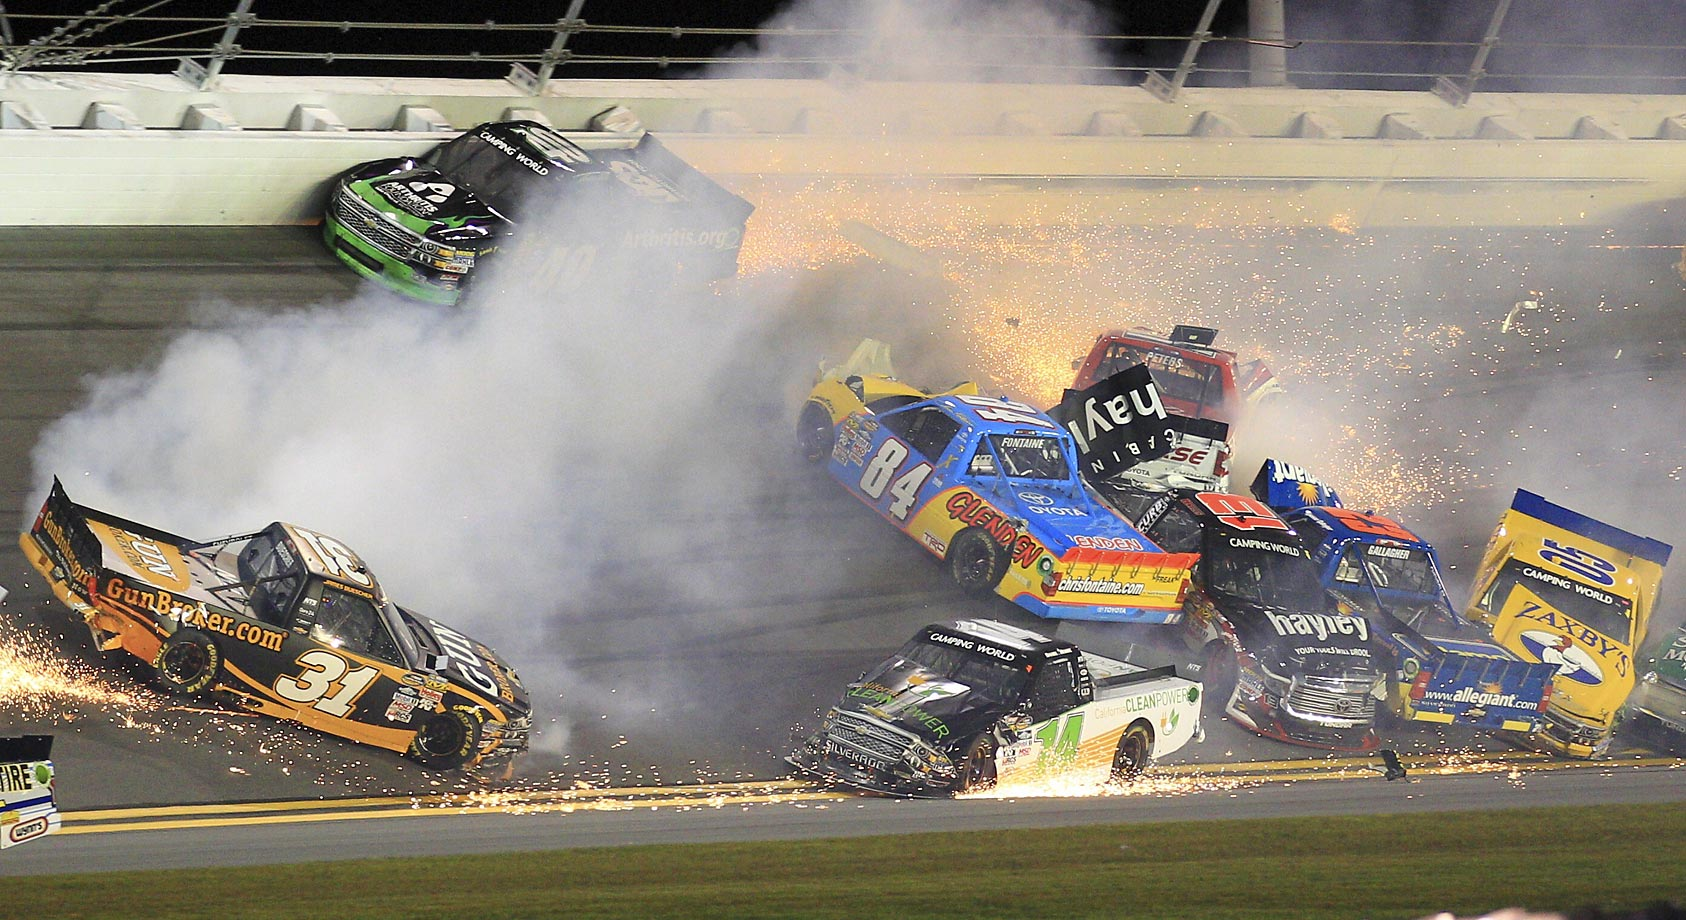 This NASCAR Truck series crash at Daytona involved drivers James Buescher (31), Todd Peck (40), Daniel Hemric (14), Chris Fontaine (84), Timothy Peters (17), Cameron Hayley (13), Spencer Gallagher (23) and John Wes Townley (05).